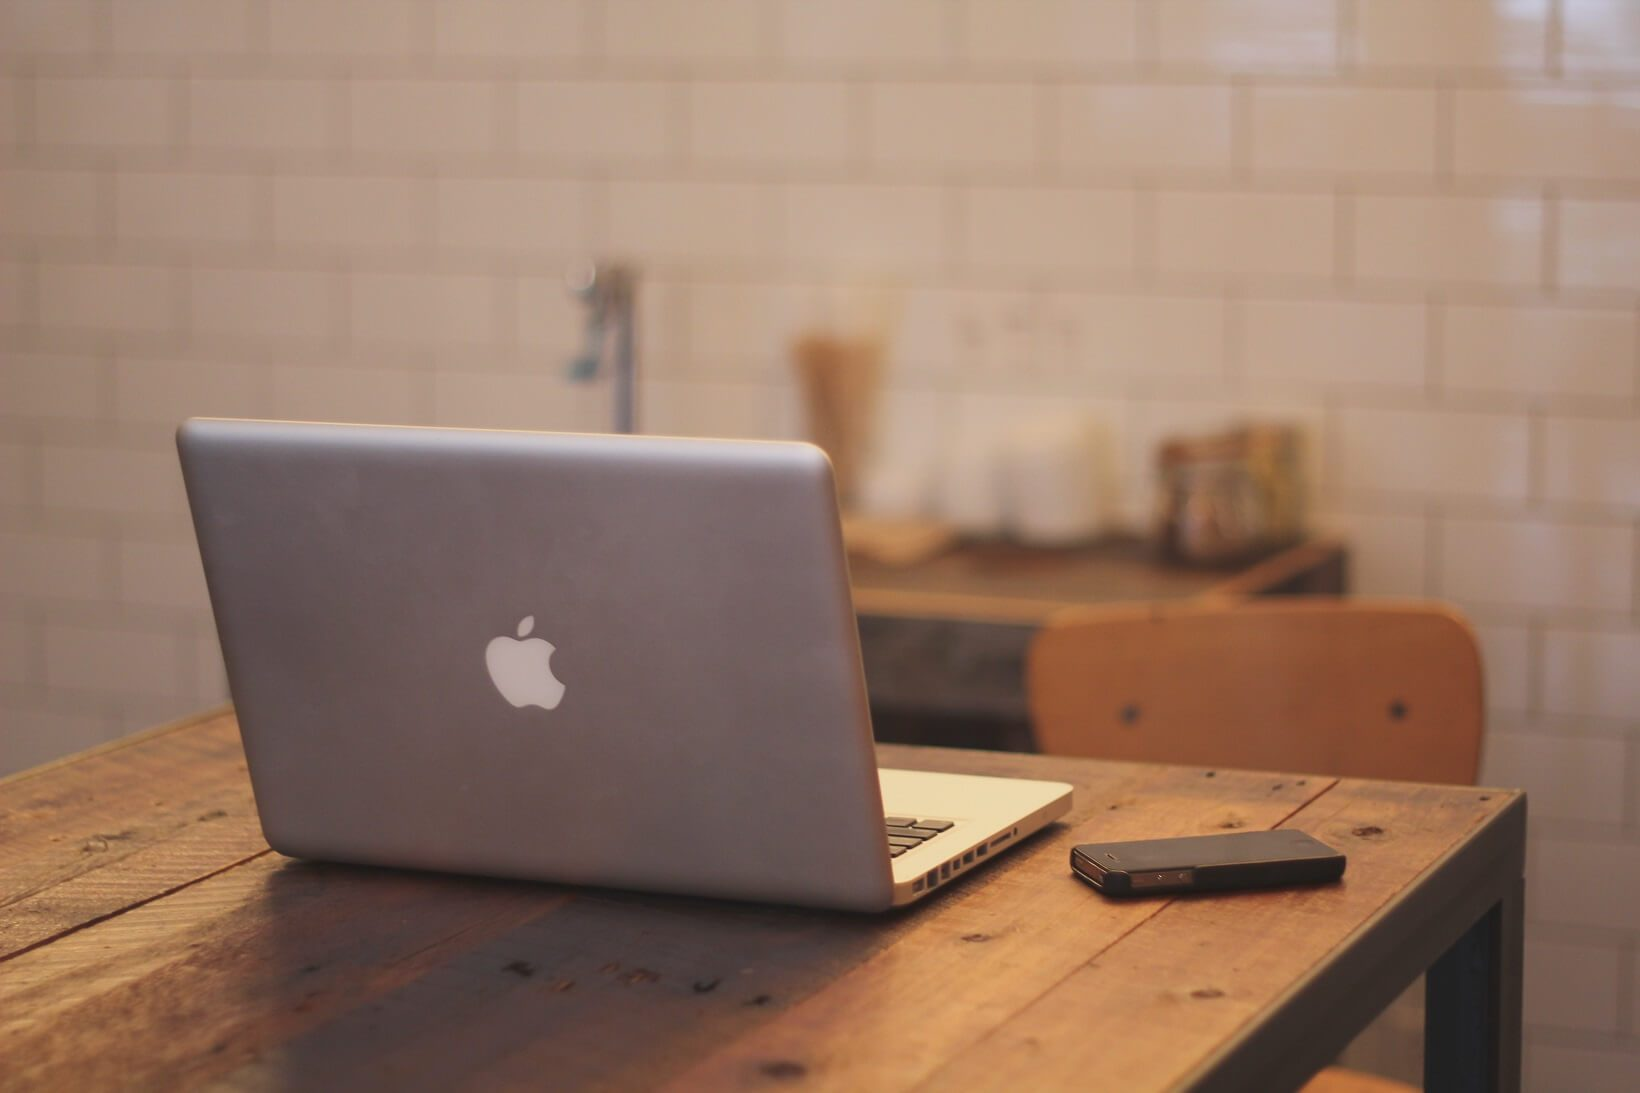 a macbook sitting on a brown table in a kitchen with a phone next to it